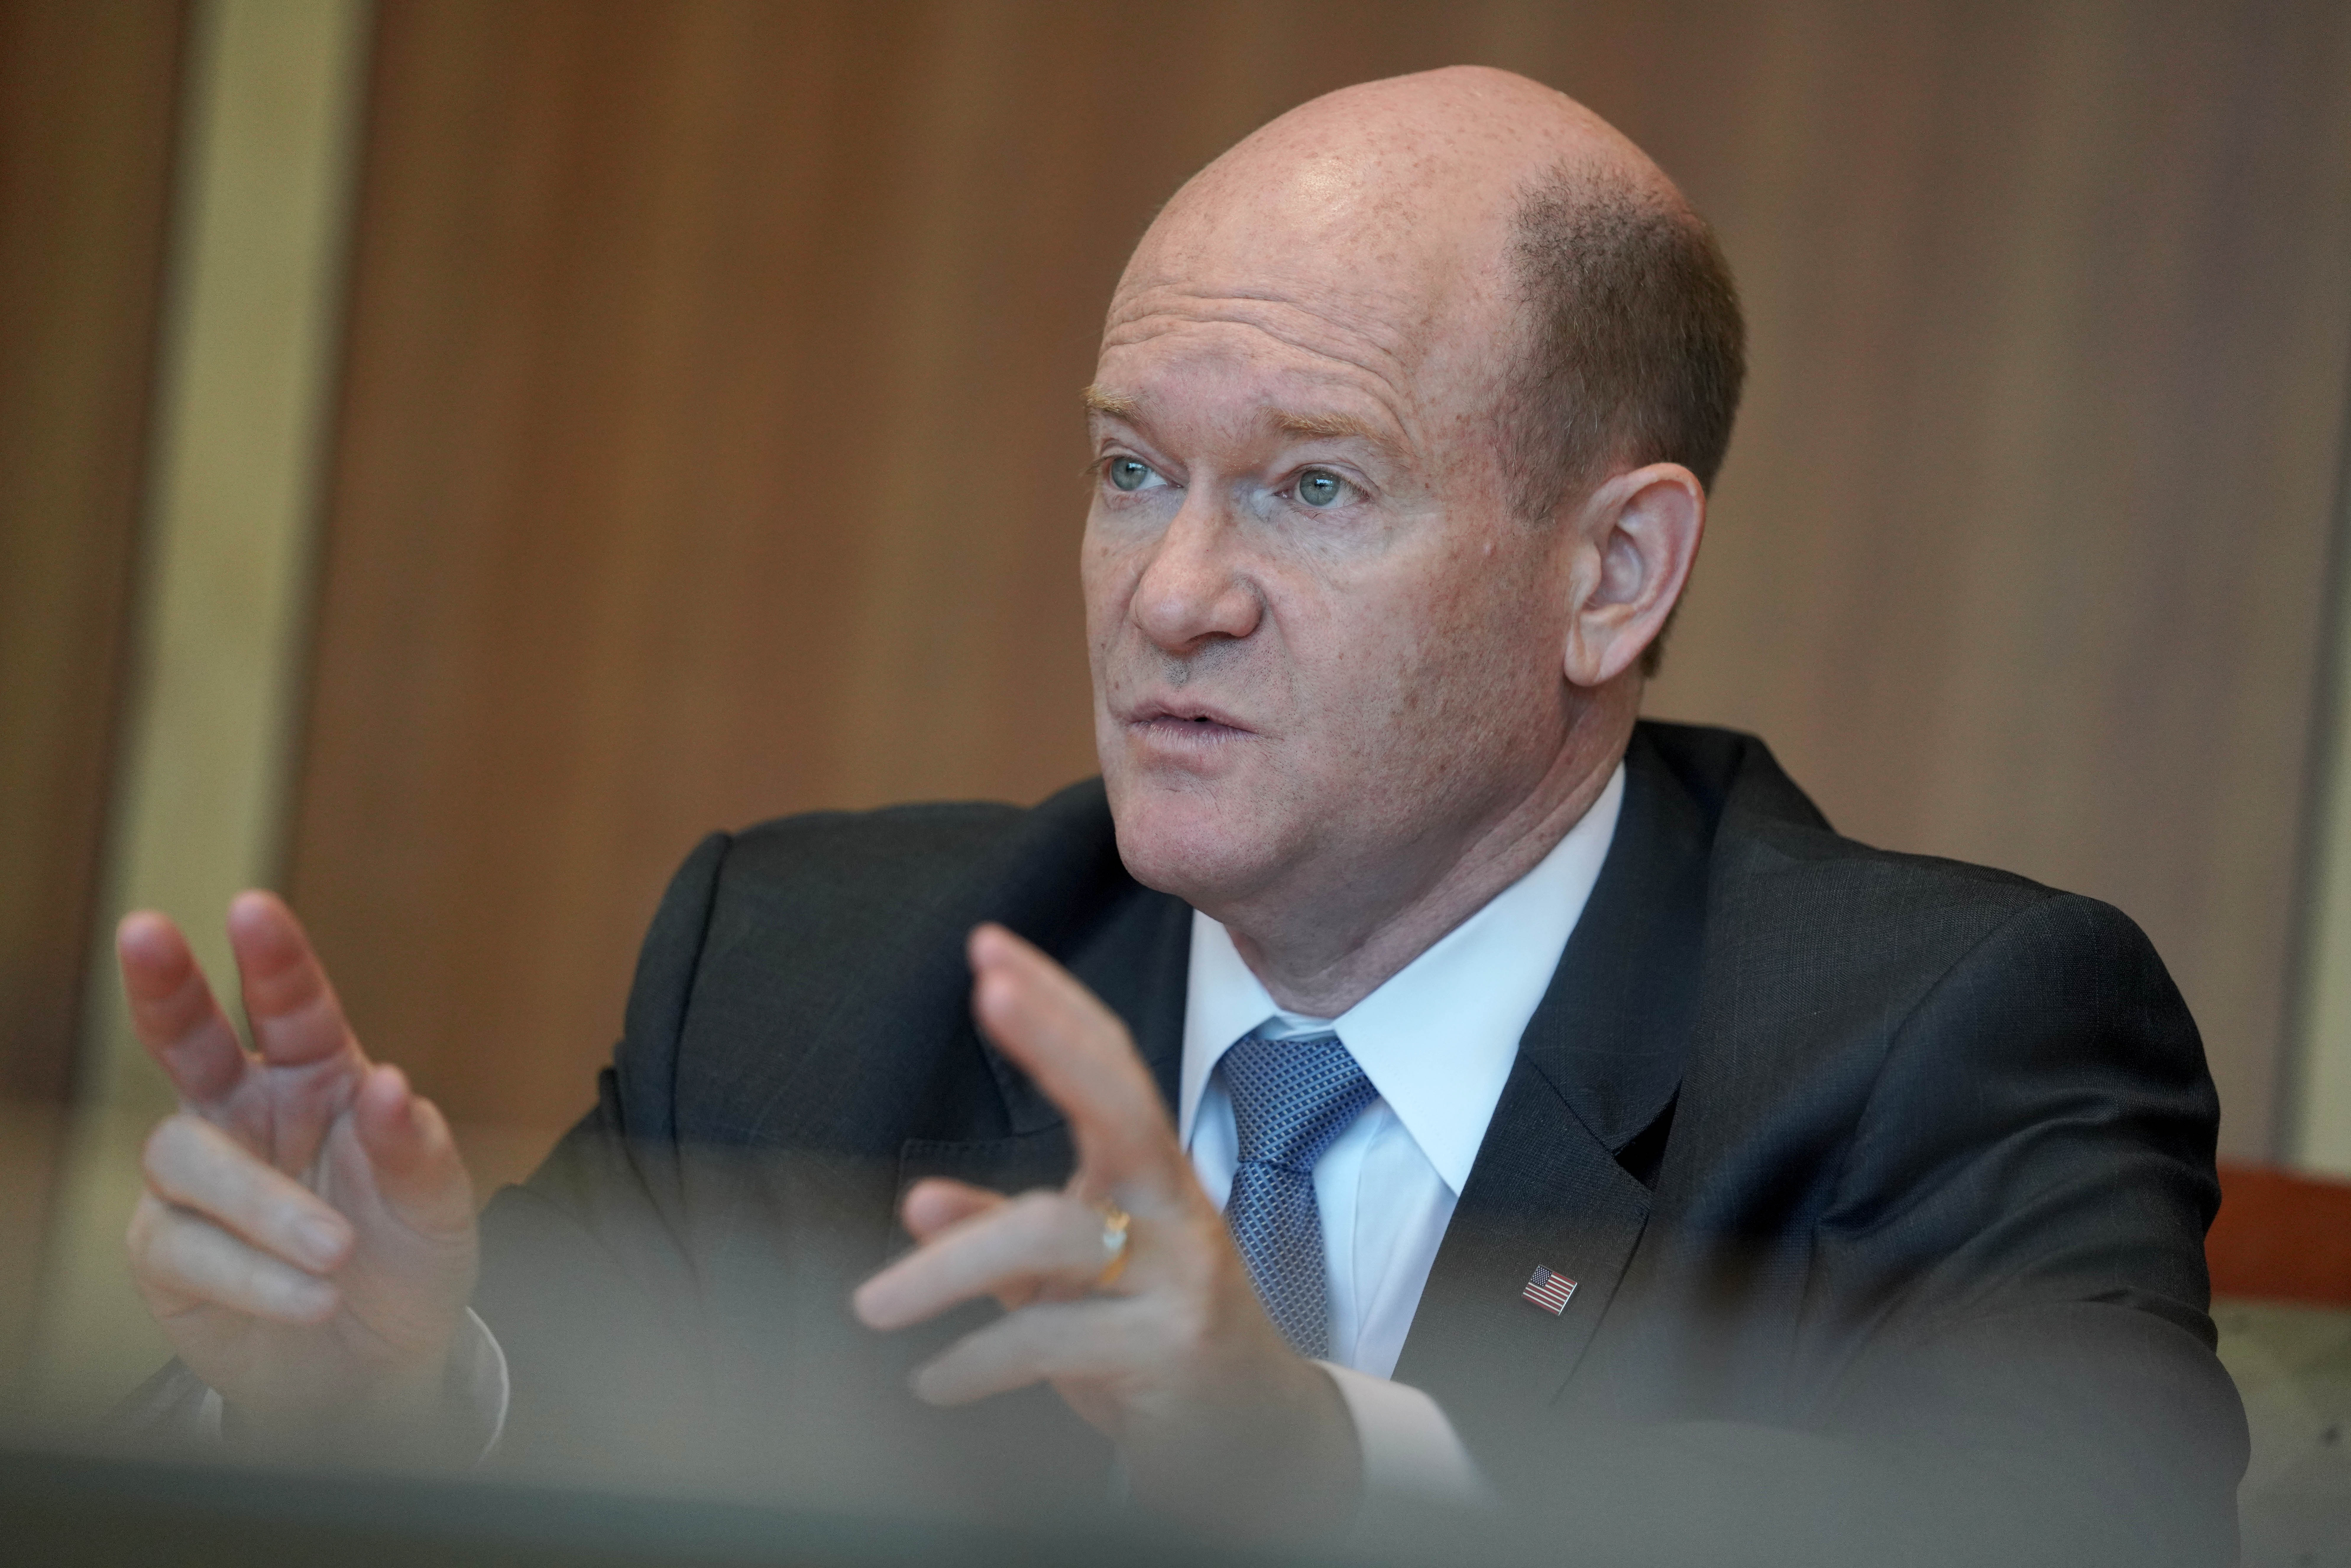 Sen. Chris Coons supports impeachment inquiry against Trump, undecided on removal